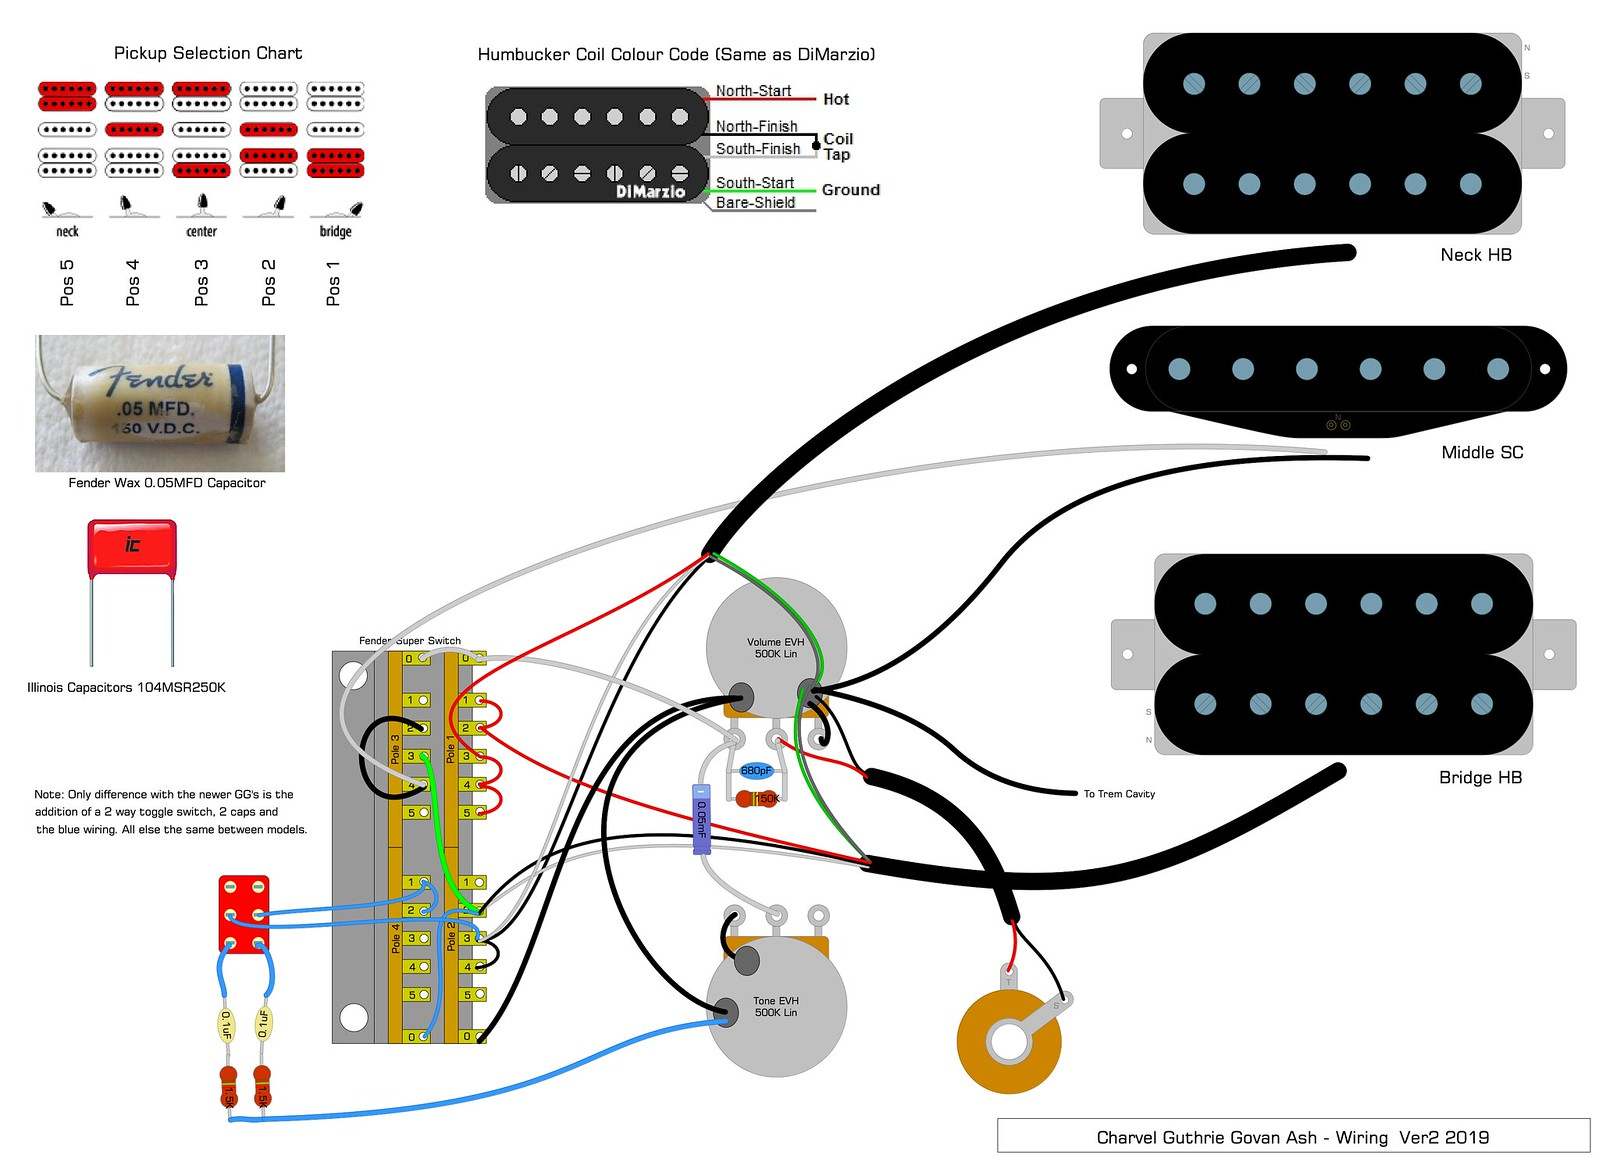 [DIAGRAM_5FD]  Charvel Guthrie Govan Wiring Diagram | GuitarNutz 2 | Charvel Guitar Wiring Diagrams |  | Guitar Nuts 2 - ProBoards